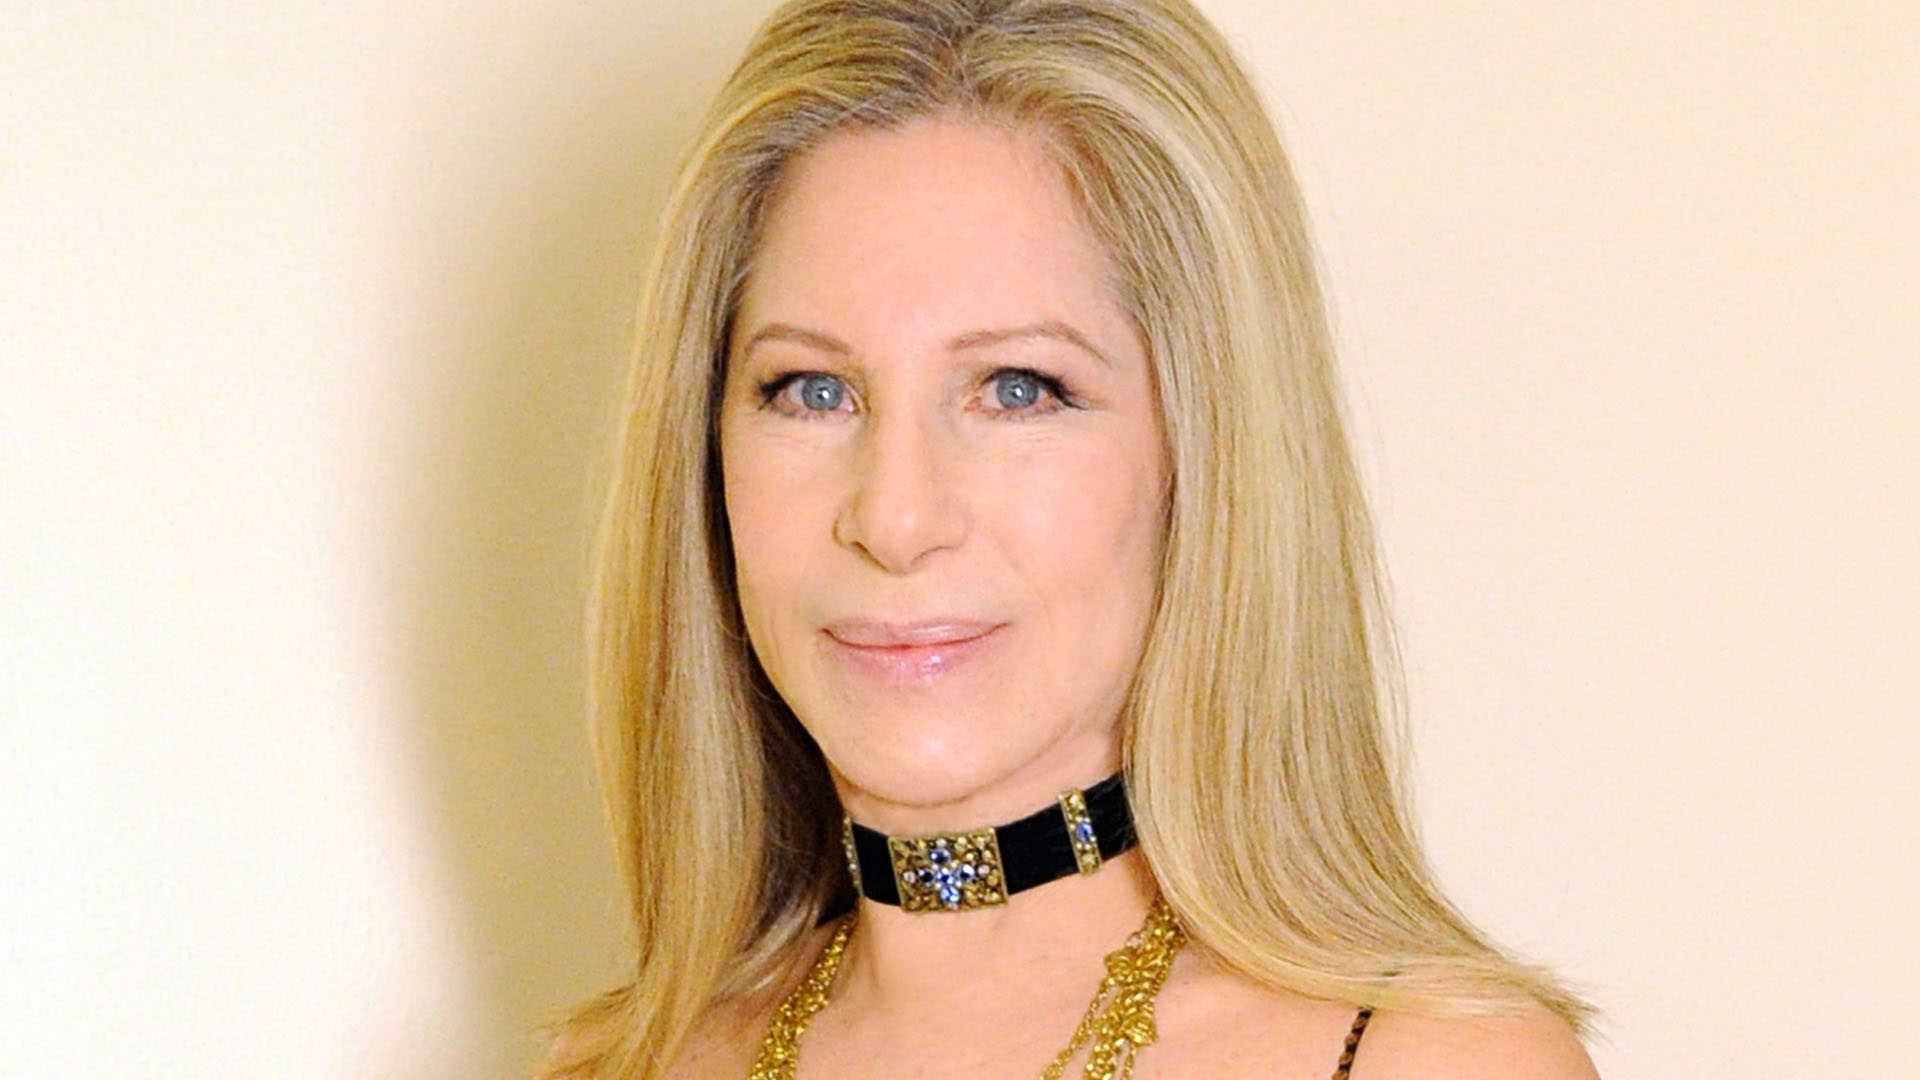 barbra streisand - photo #24